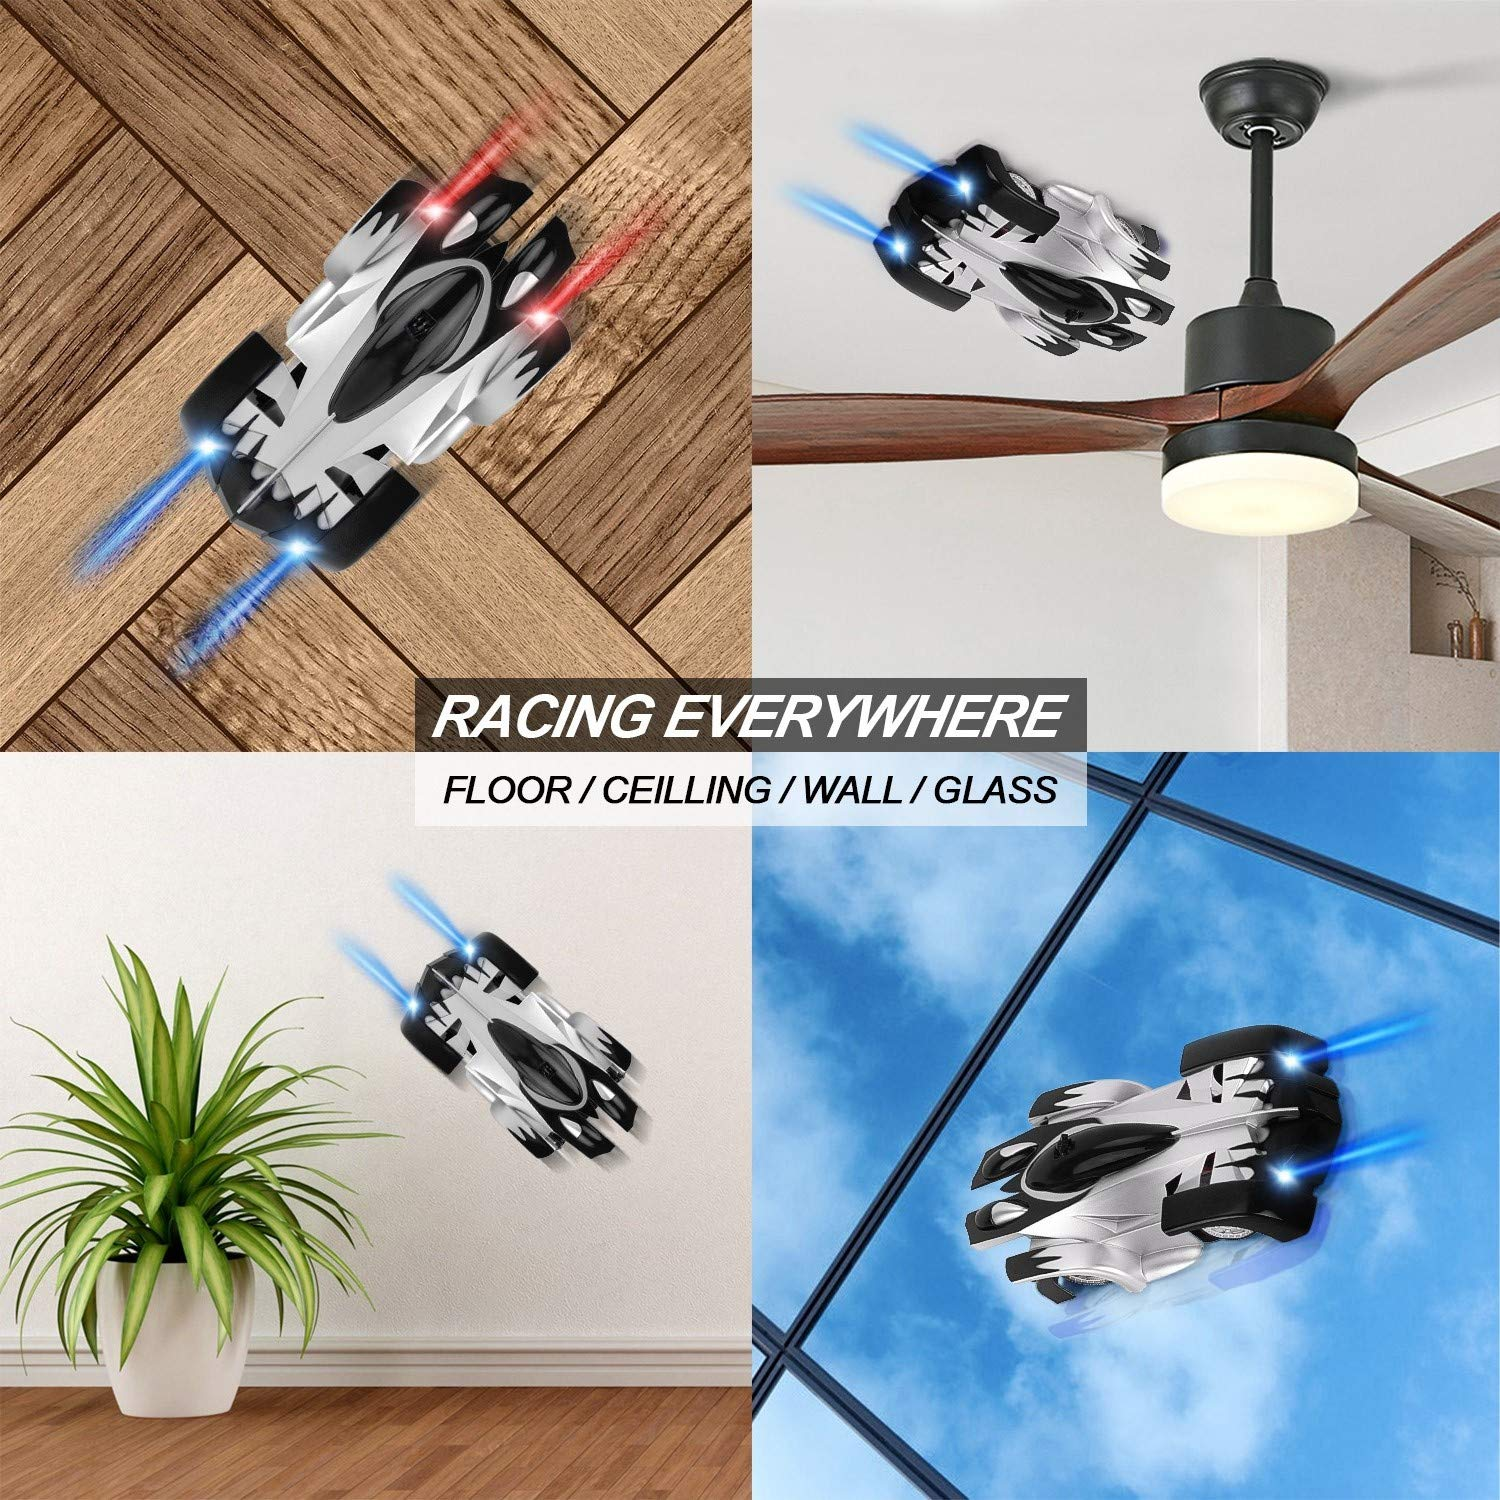 Wall Climbing Car Rc Toys Gravity Defying Race Cars For Boys Usb Rechargeable Climbs Walls Ceilings Panels Glass Tradeone Remote Control Car Black Vehiculos De Molde Fundido Juguetes Y Juegos